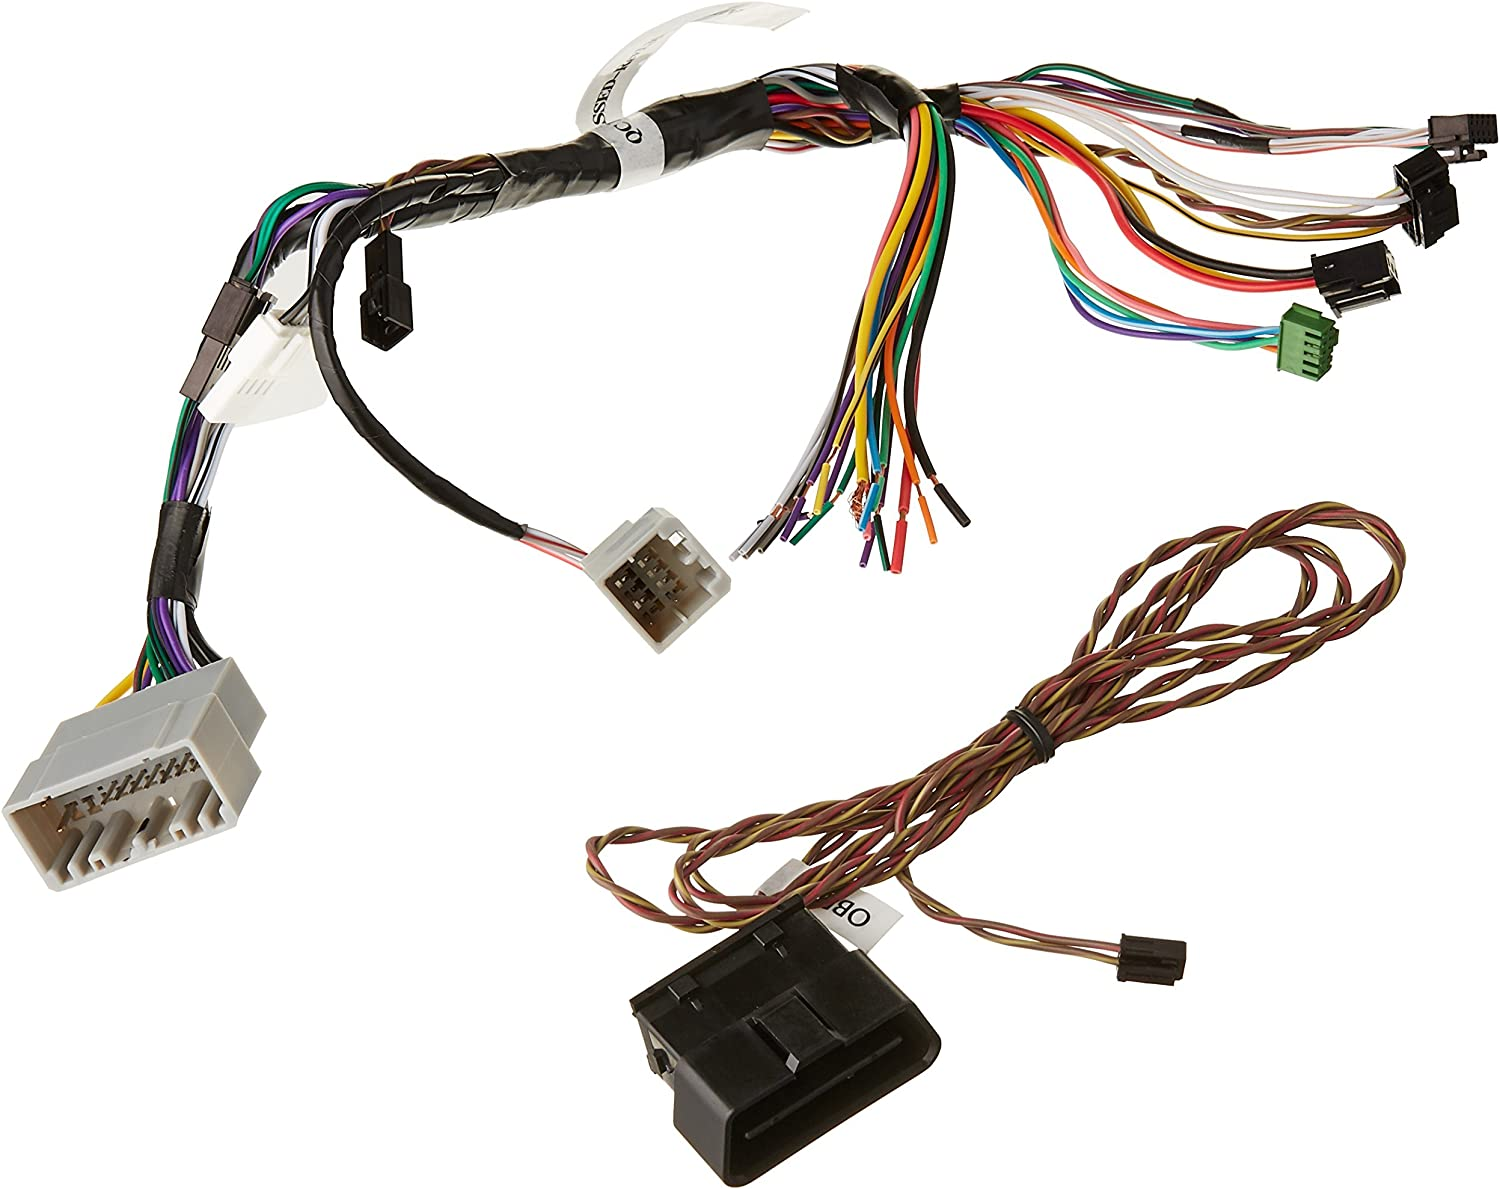 iDat-Alink Maestro Plug and Play T-Harness